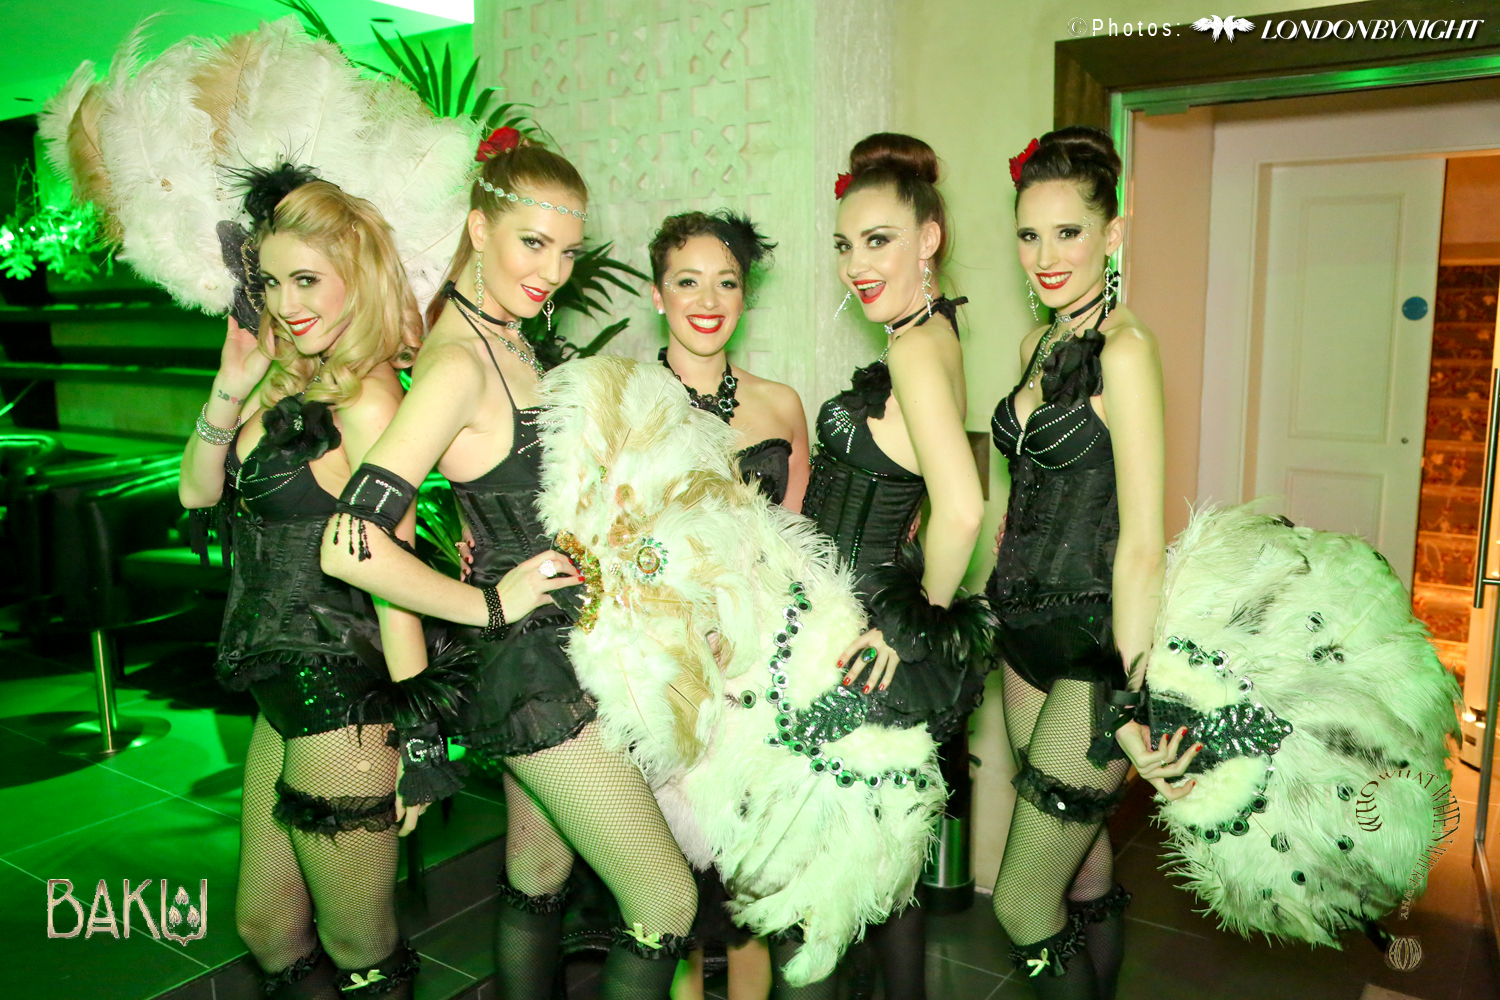 2012 11 30 Baku_ jimmy de paris1213.jpg